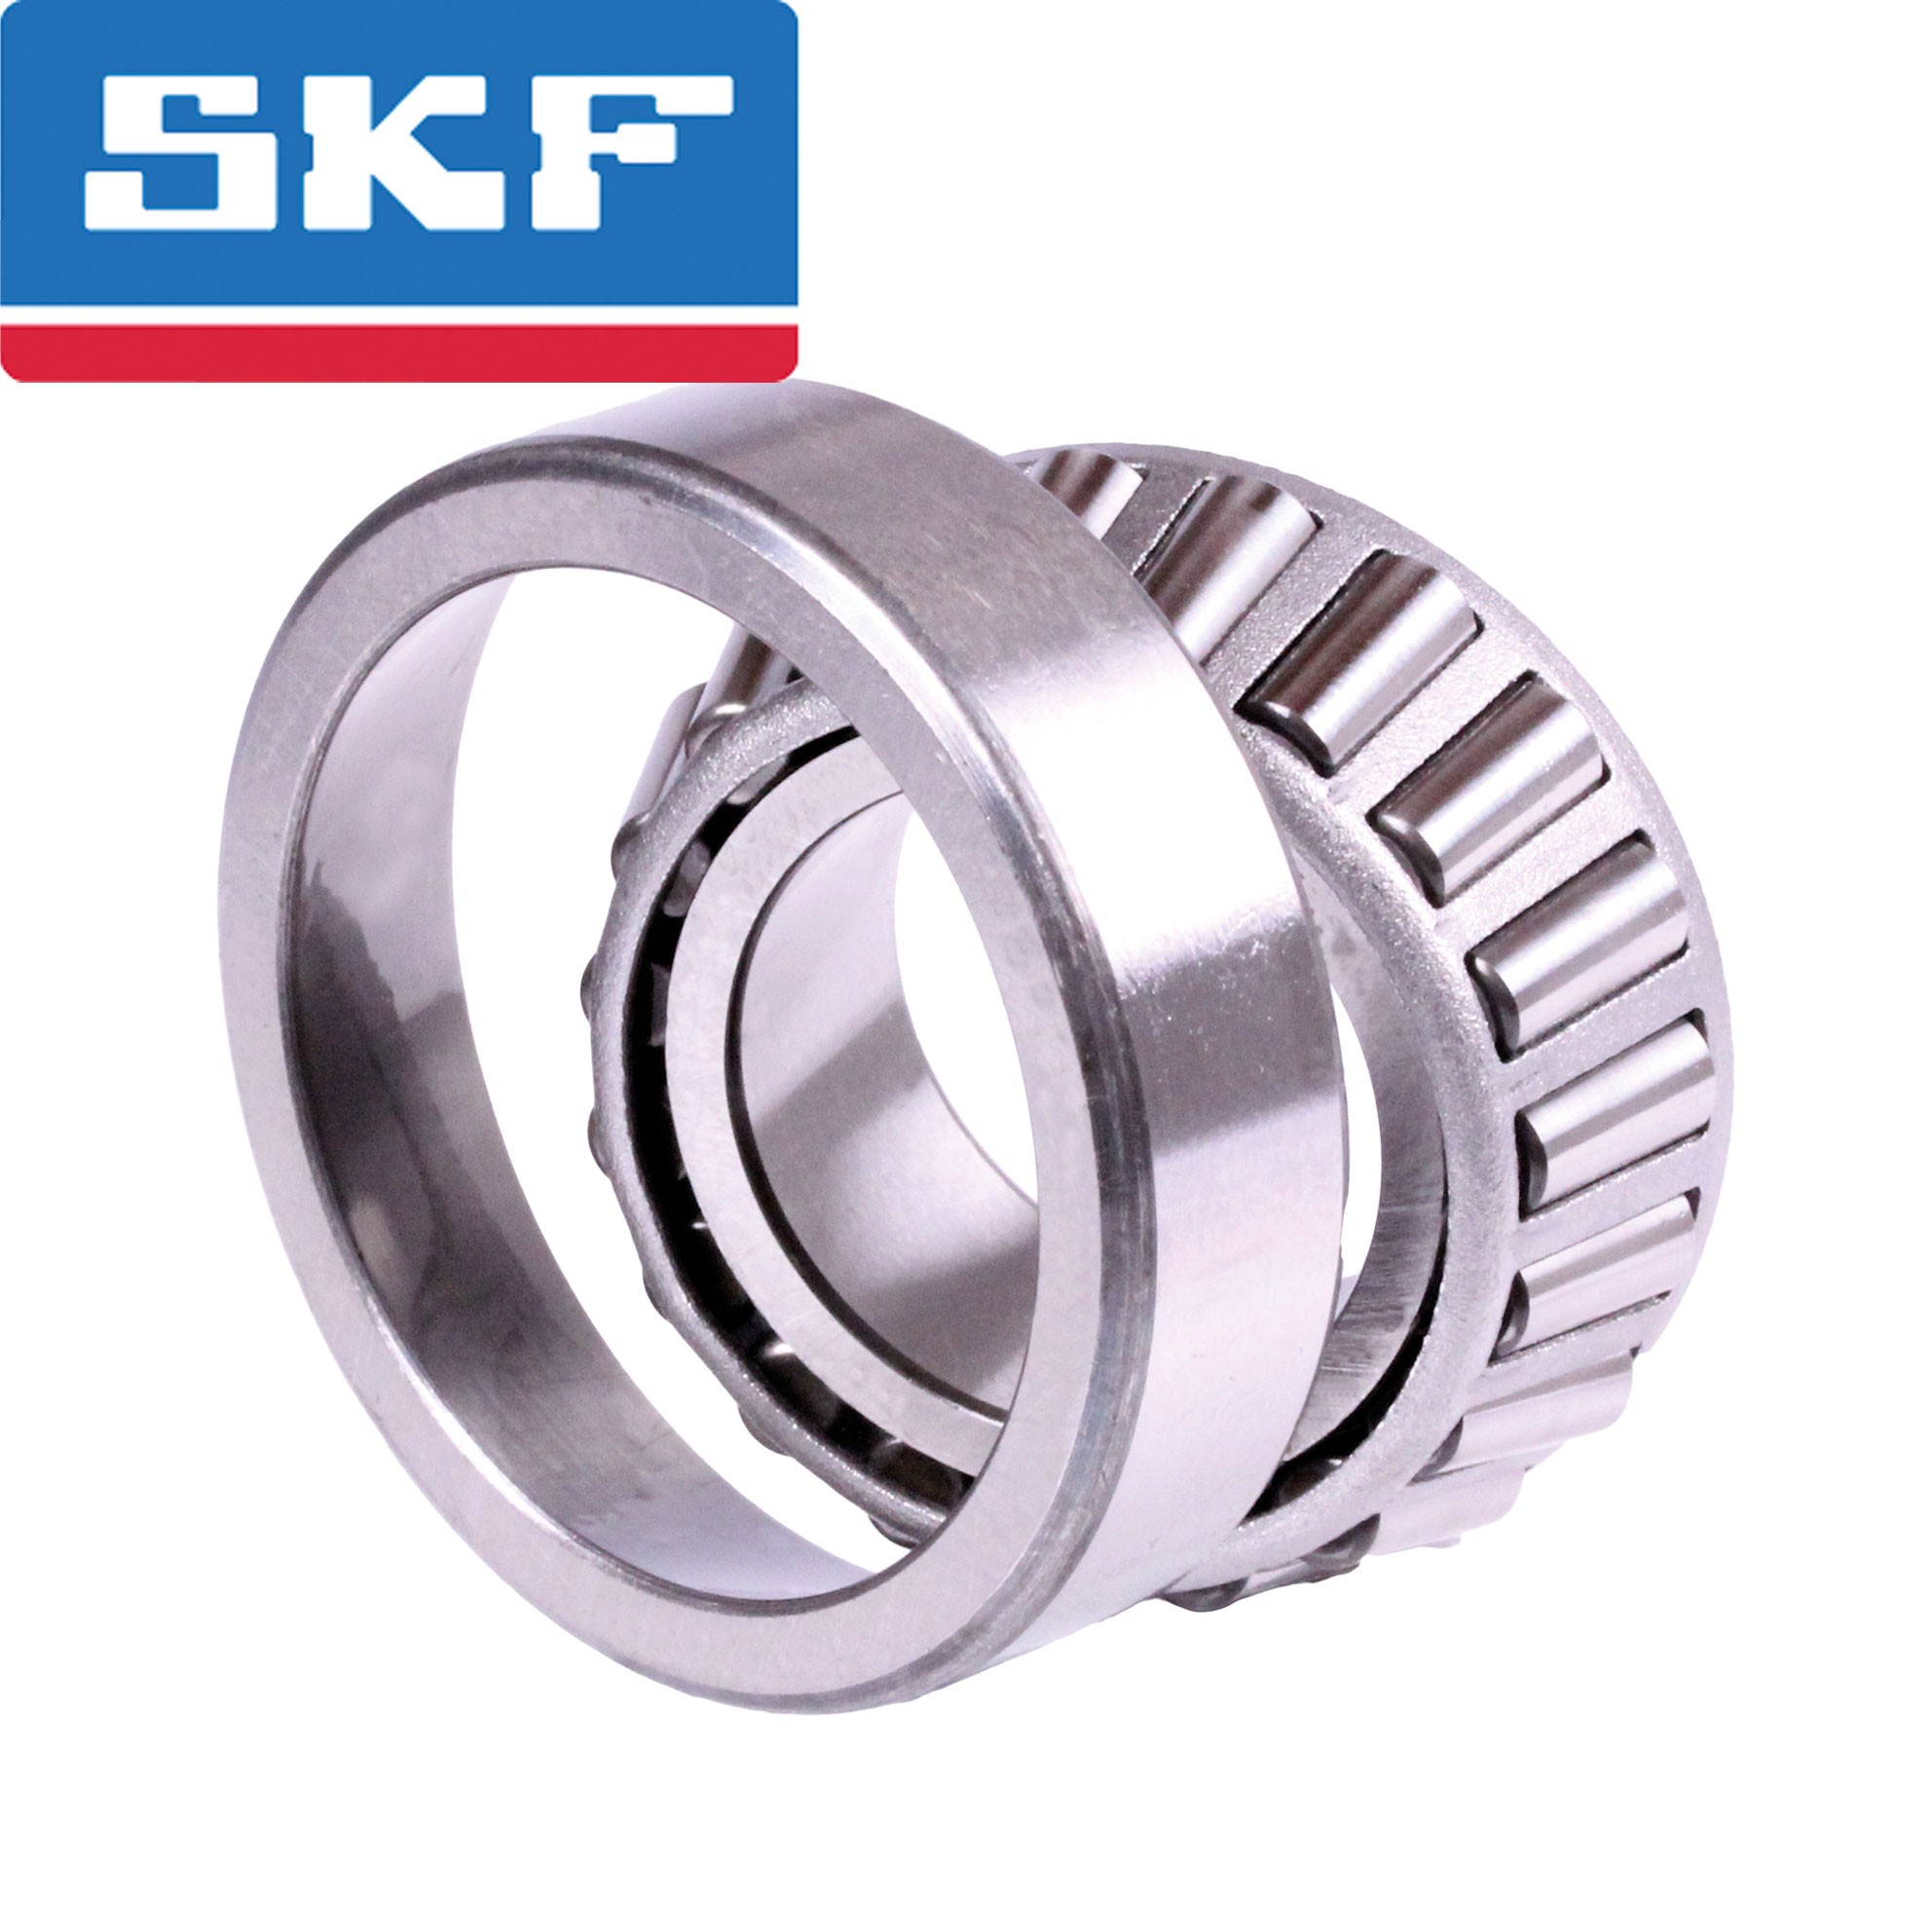 SKF 30209 J2Q Tapered Roller Bearing Single Row 45x85x20.75 mm SAME DAY SHIPPING